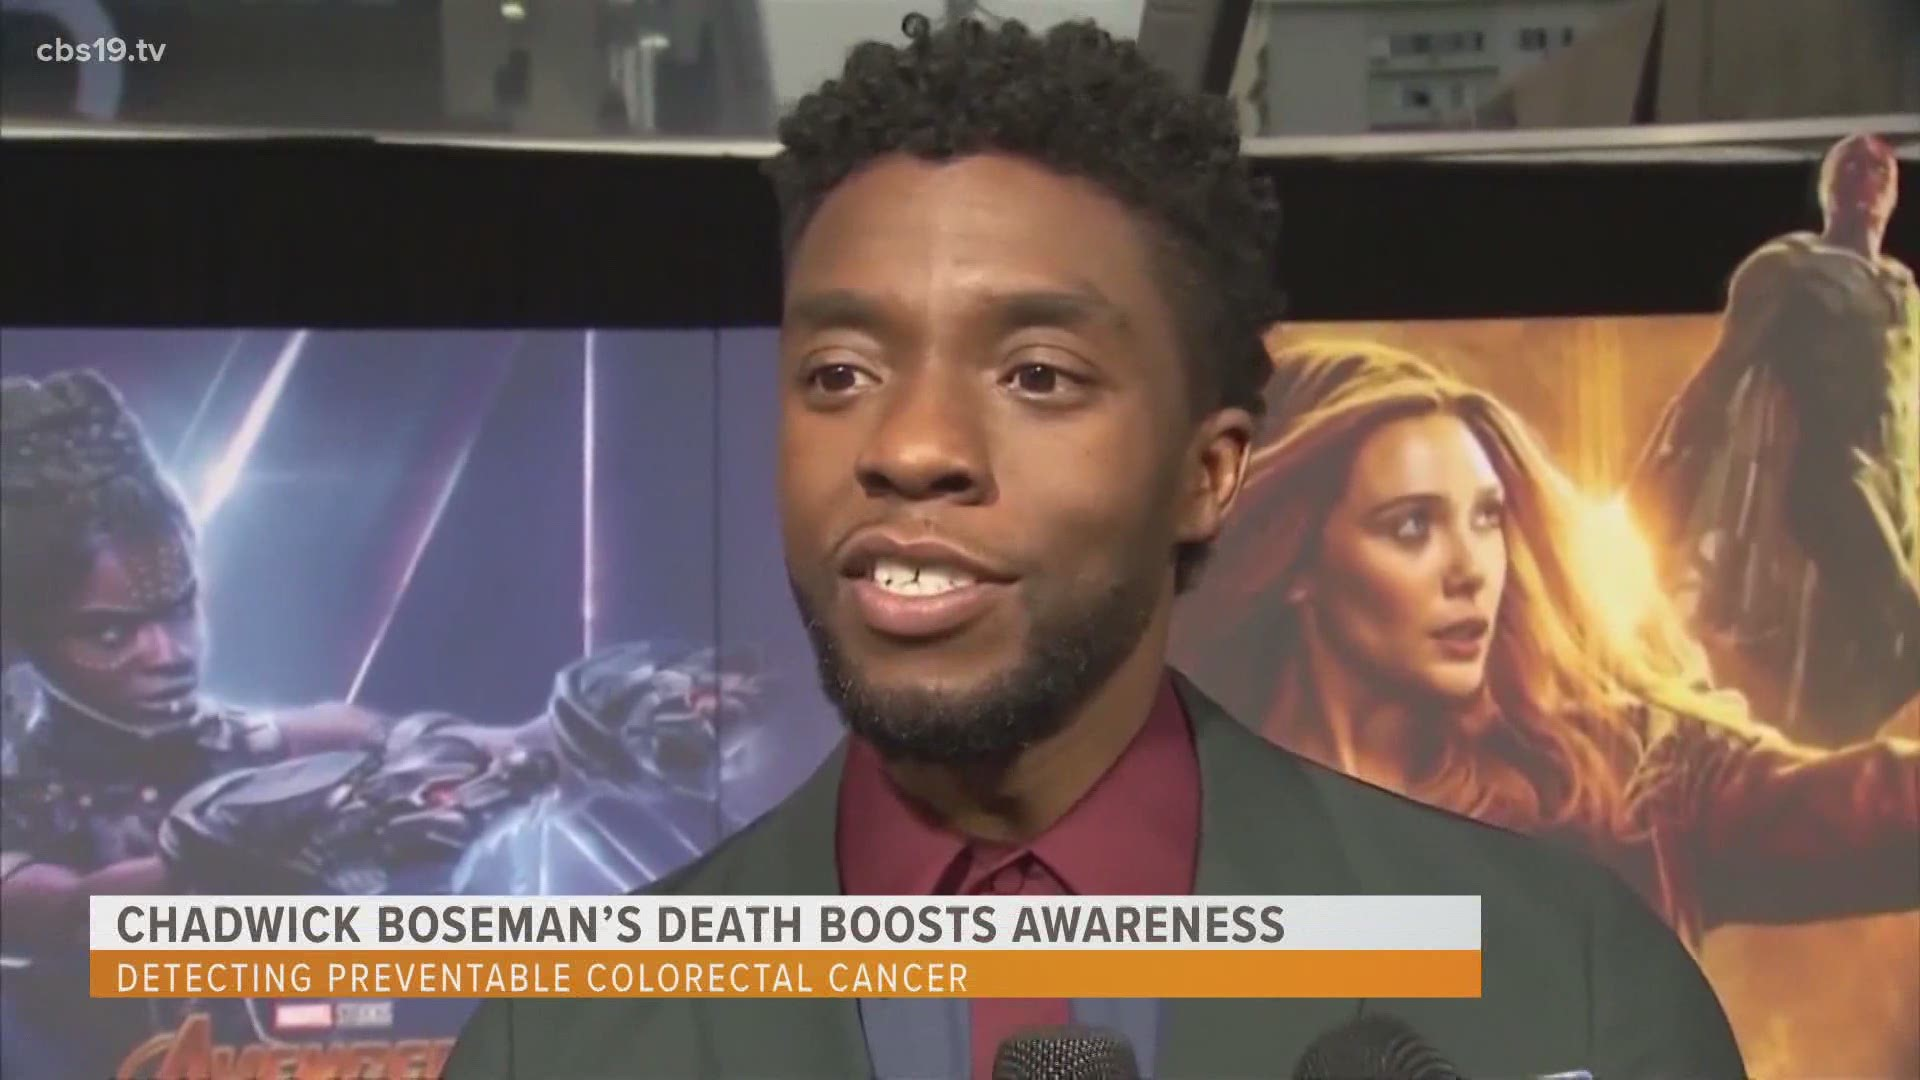 Chadwick Boseman S Death Raising Awareness Of Colon Cancer Risk In Younger Patients Cbs19 Tv